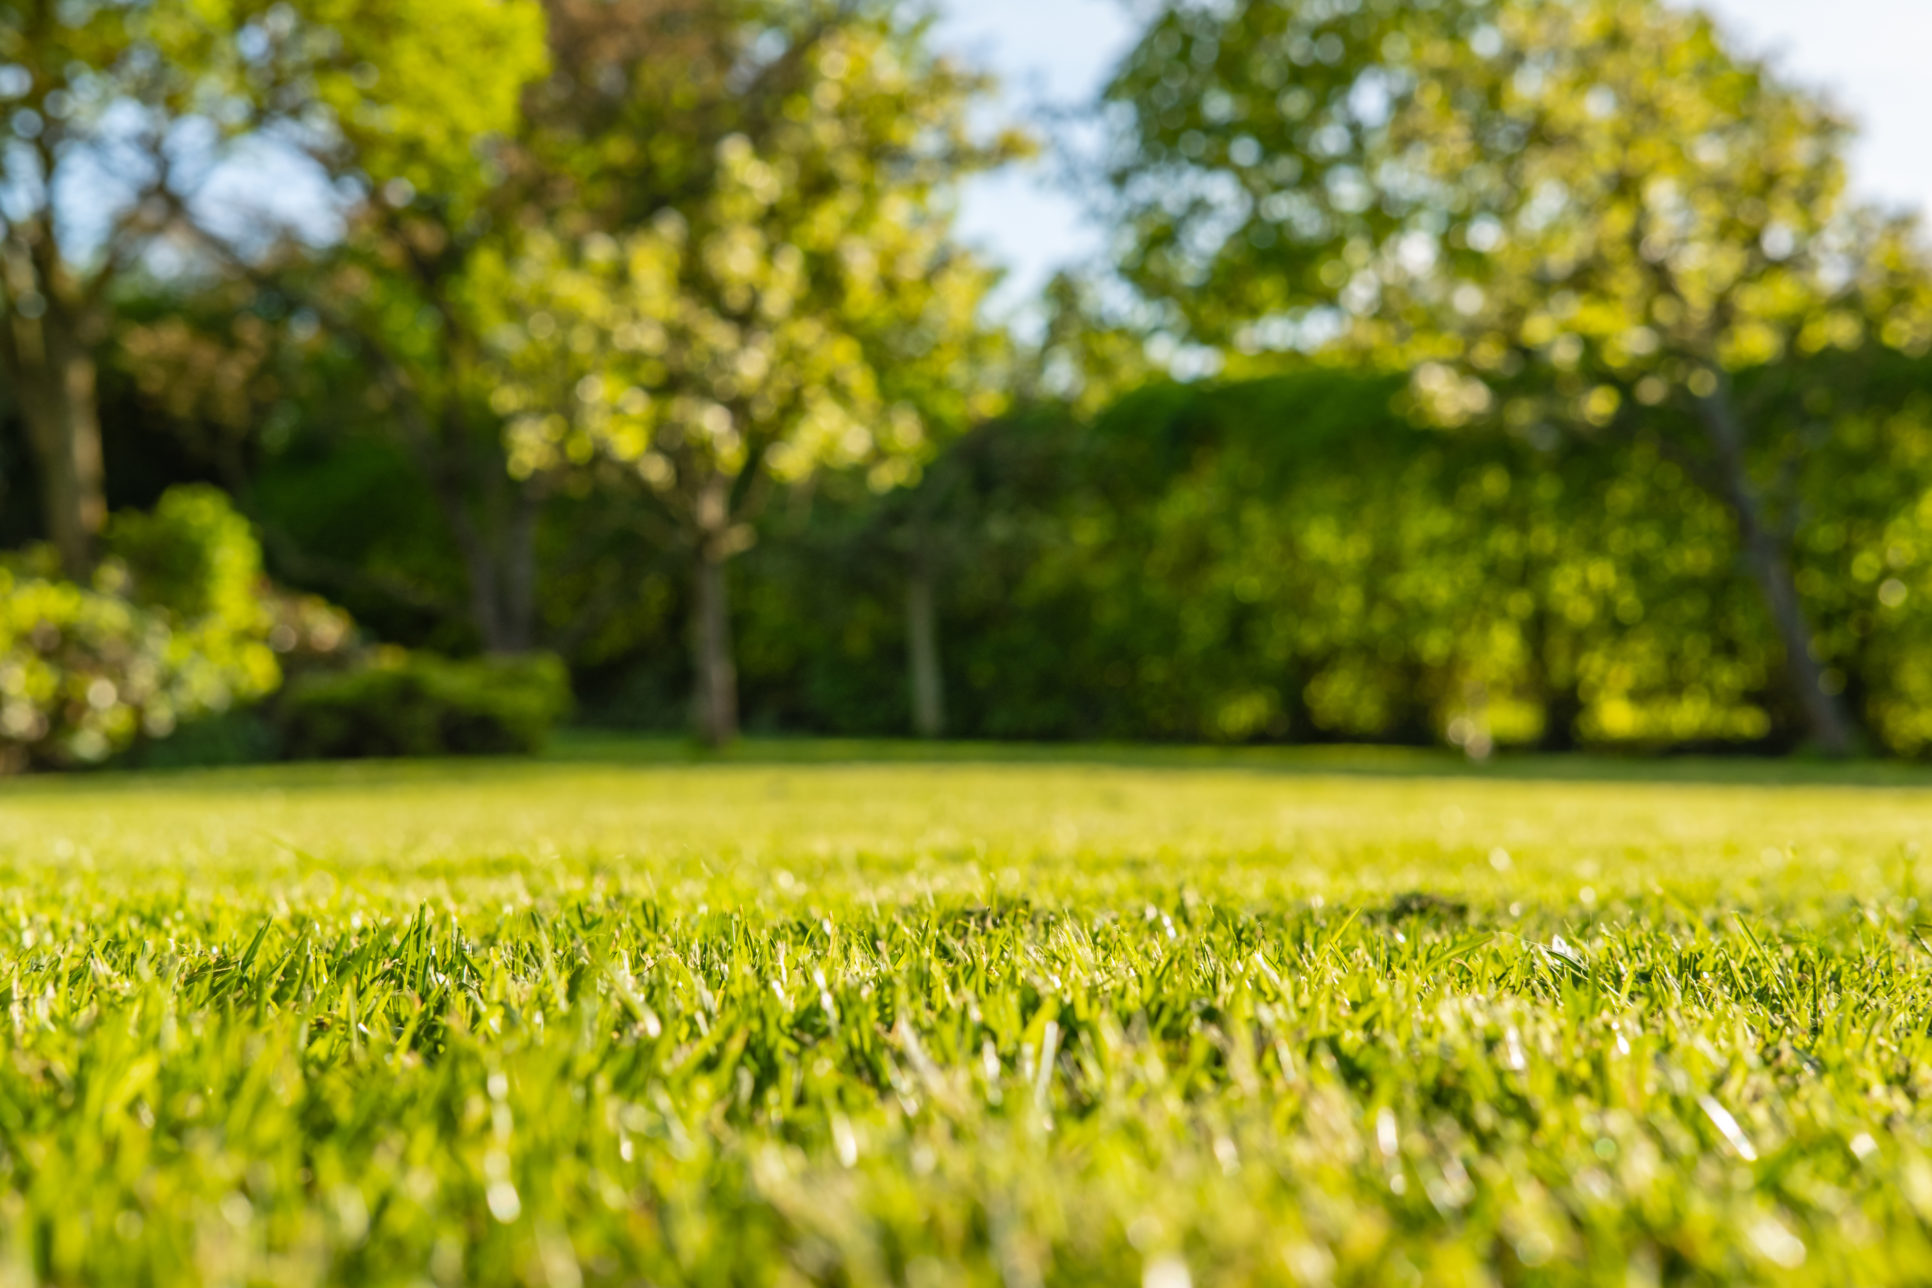 this is a photo of a nicely cut lawn with blurry trees in the background, western ma, westfield ma